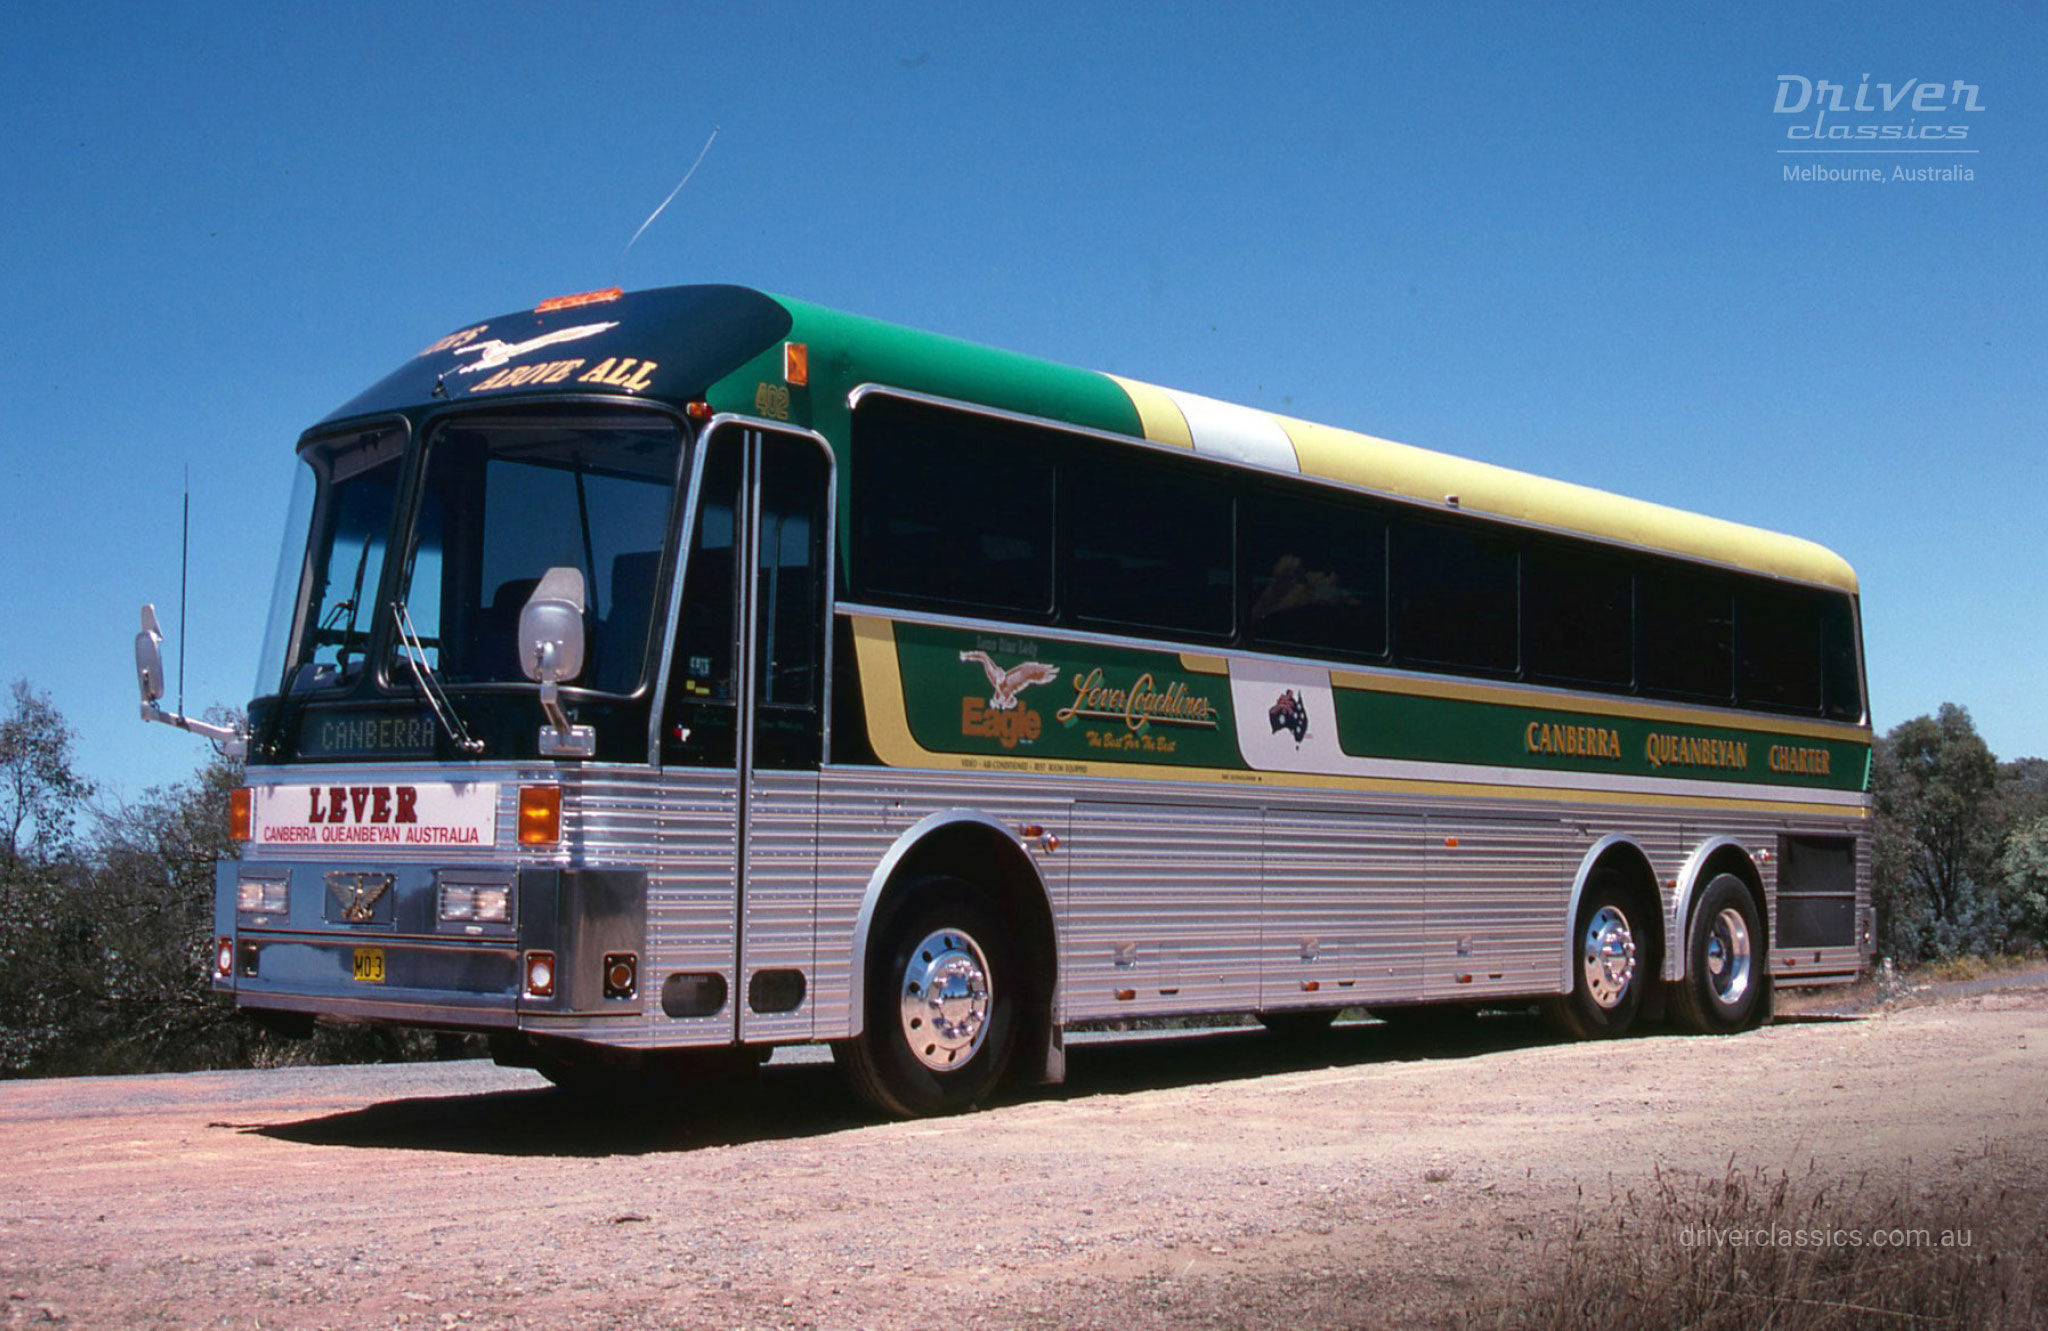 Eagle Model 20 bus, with no bullbar. Photo taken in Queanbeyan NSW in January 1990.